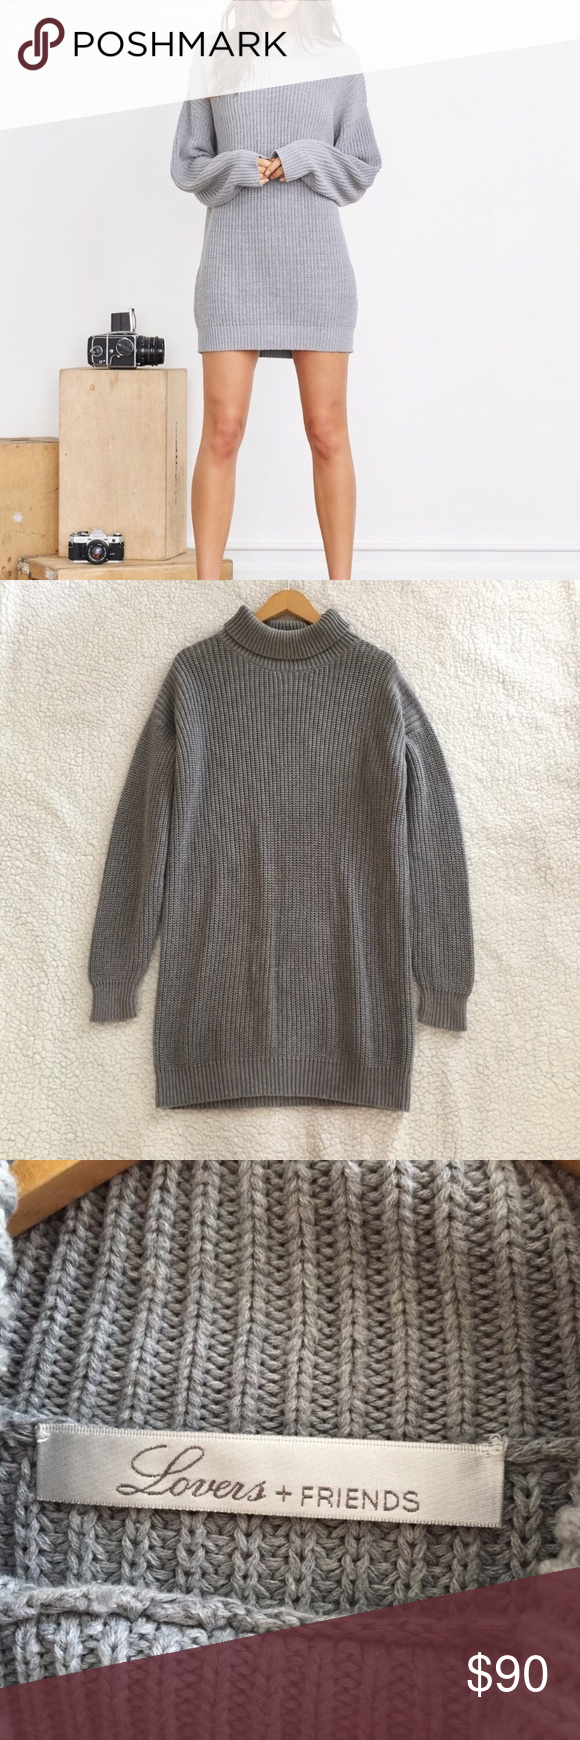 157b846d888 Lovers + Friends Christina Sweater Dress All wear is pictured - faint  makeup stain could easily be washed and minor pulls - otherwise in great  condition.